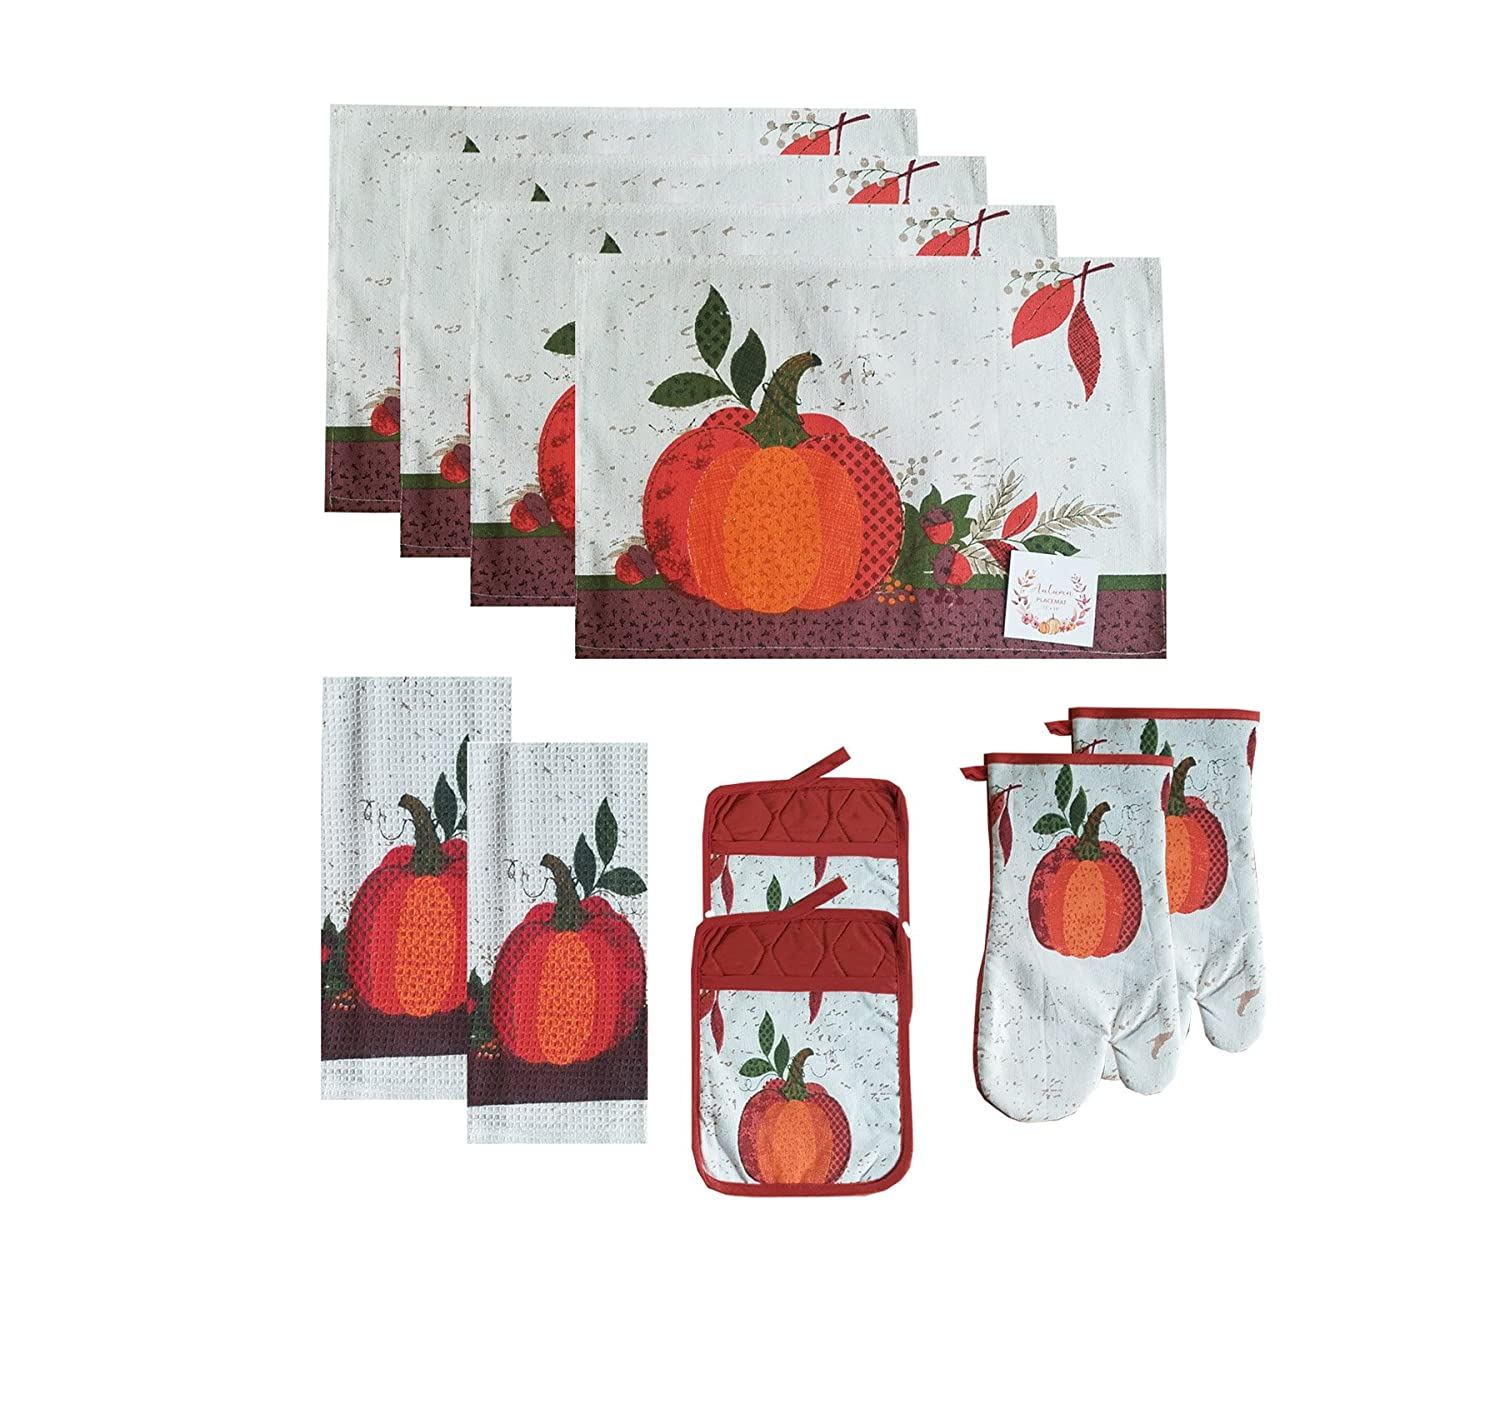 SeasonsEasy Pumpkin Kitchen Linen Set -4 Placemats, 2 Towels, 2 Pocket Potholder, and 2 Oven Mitt Tapestry, 10 Piece Set for Fall and Thanksgiving Decorating